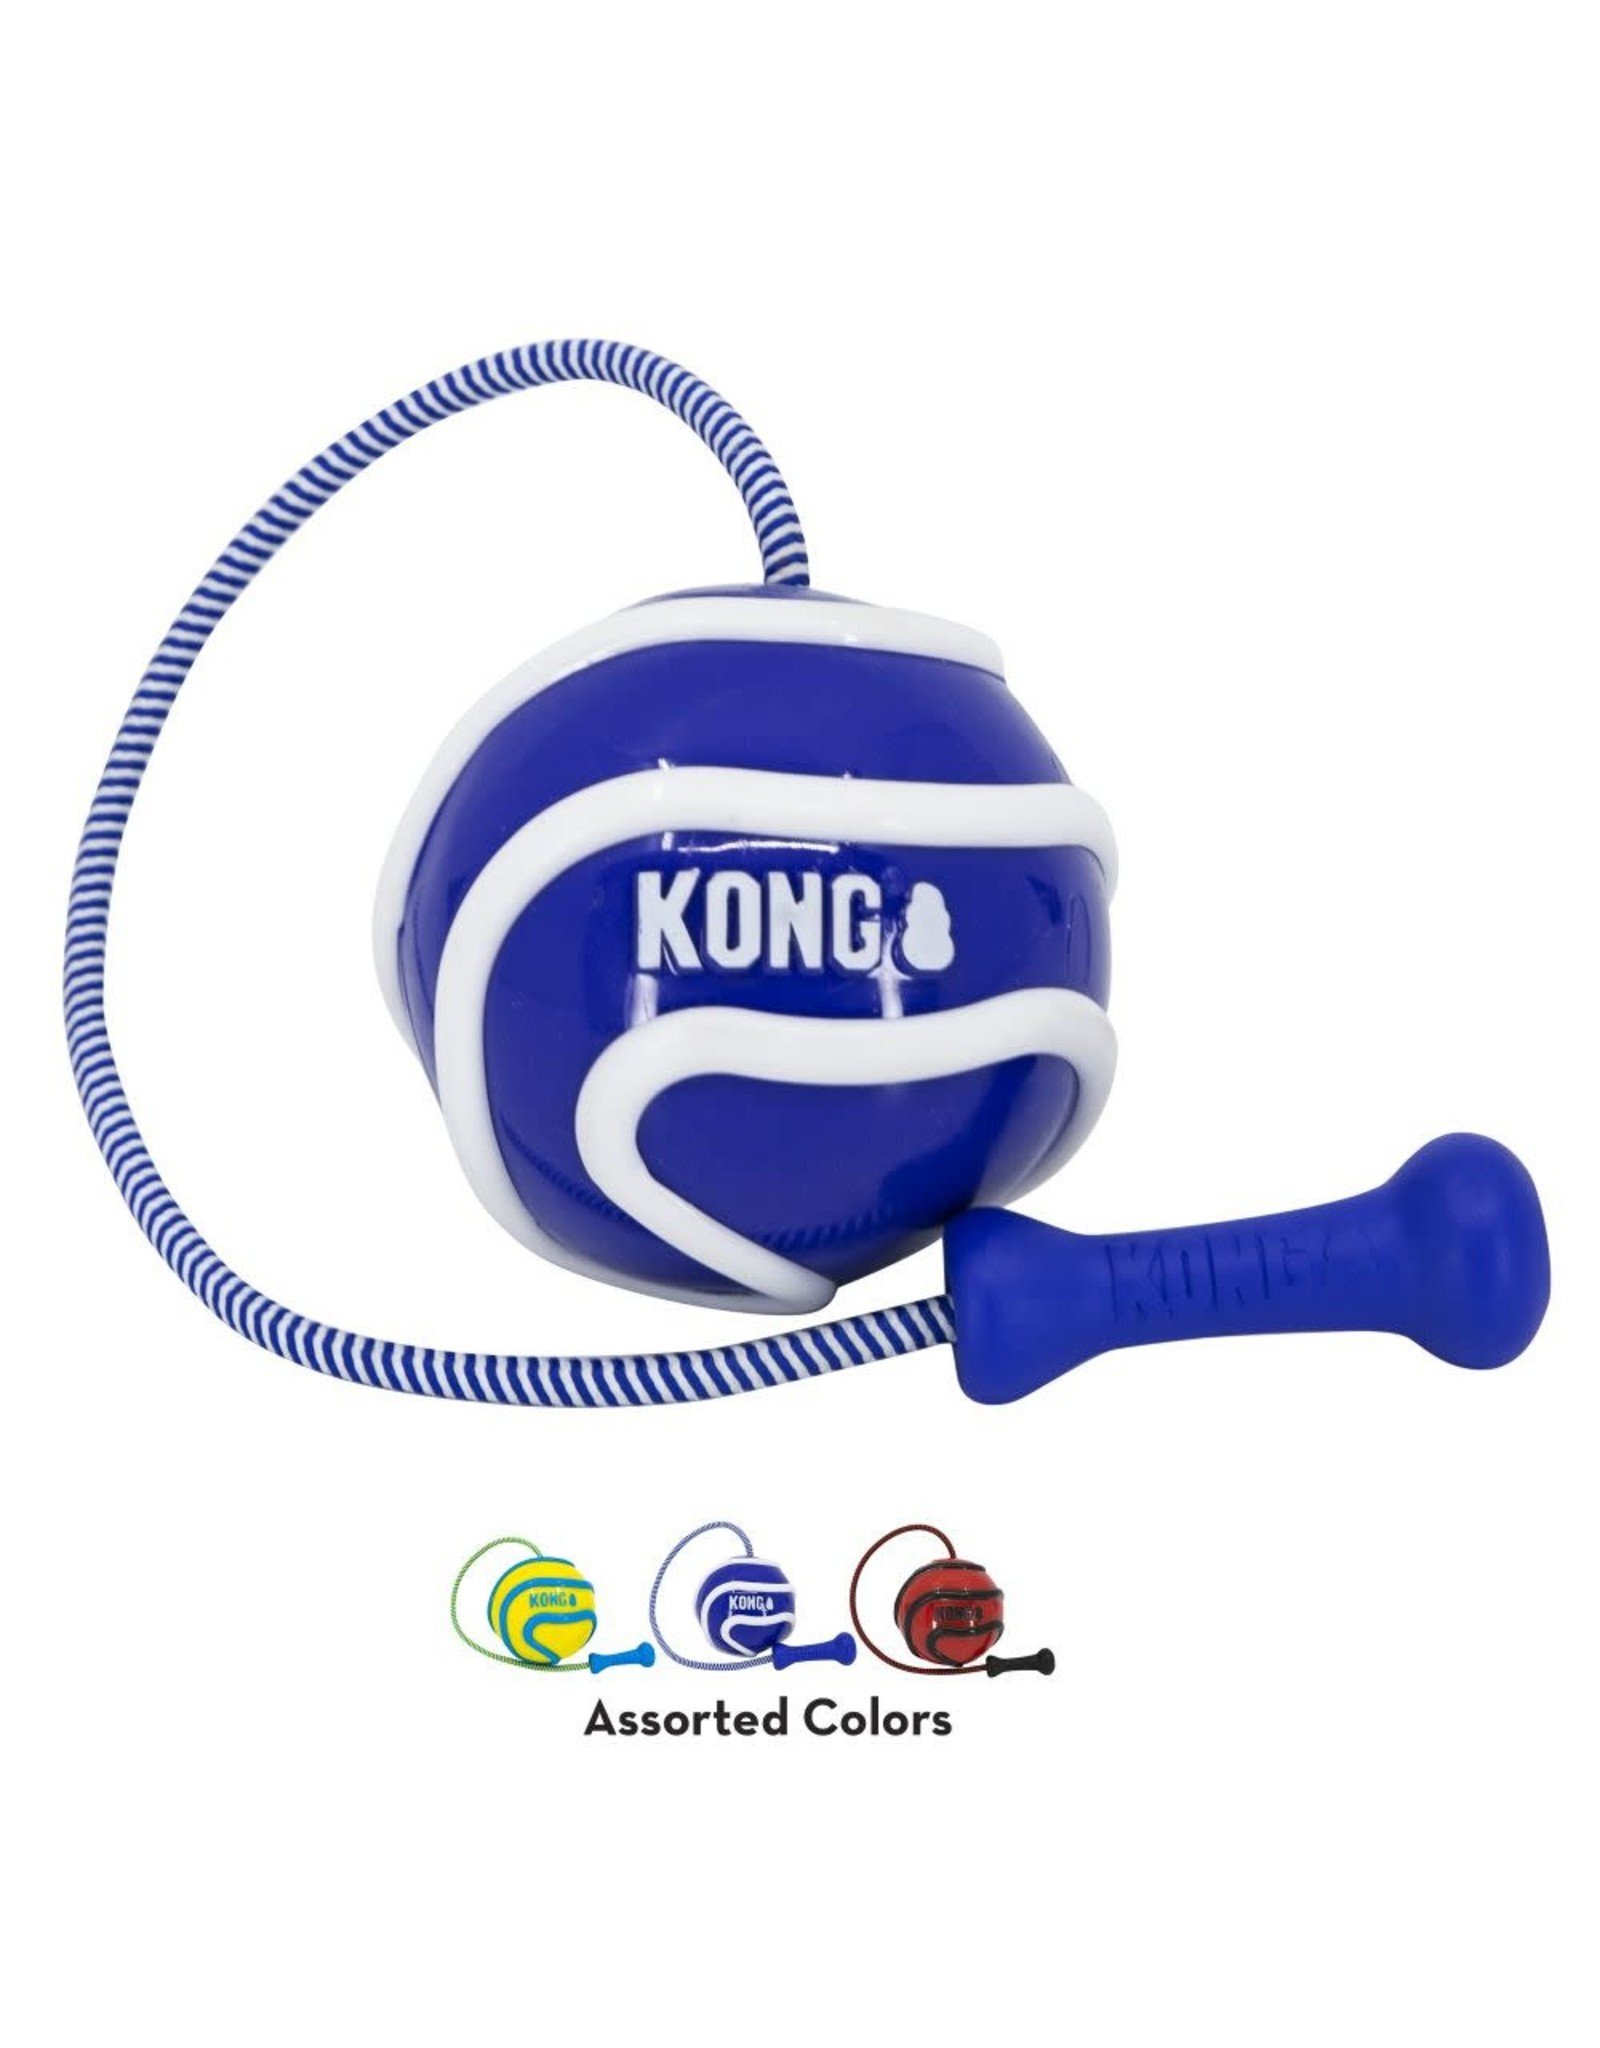 KONG Bunjiball Retrieval Dog Toy, Large